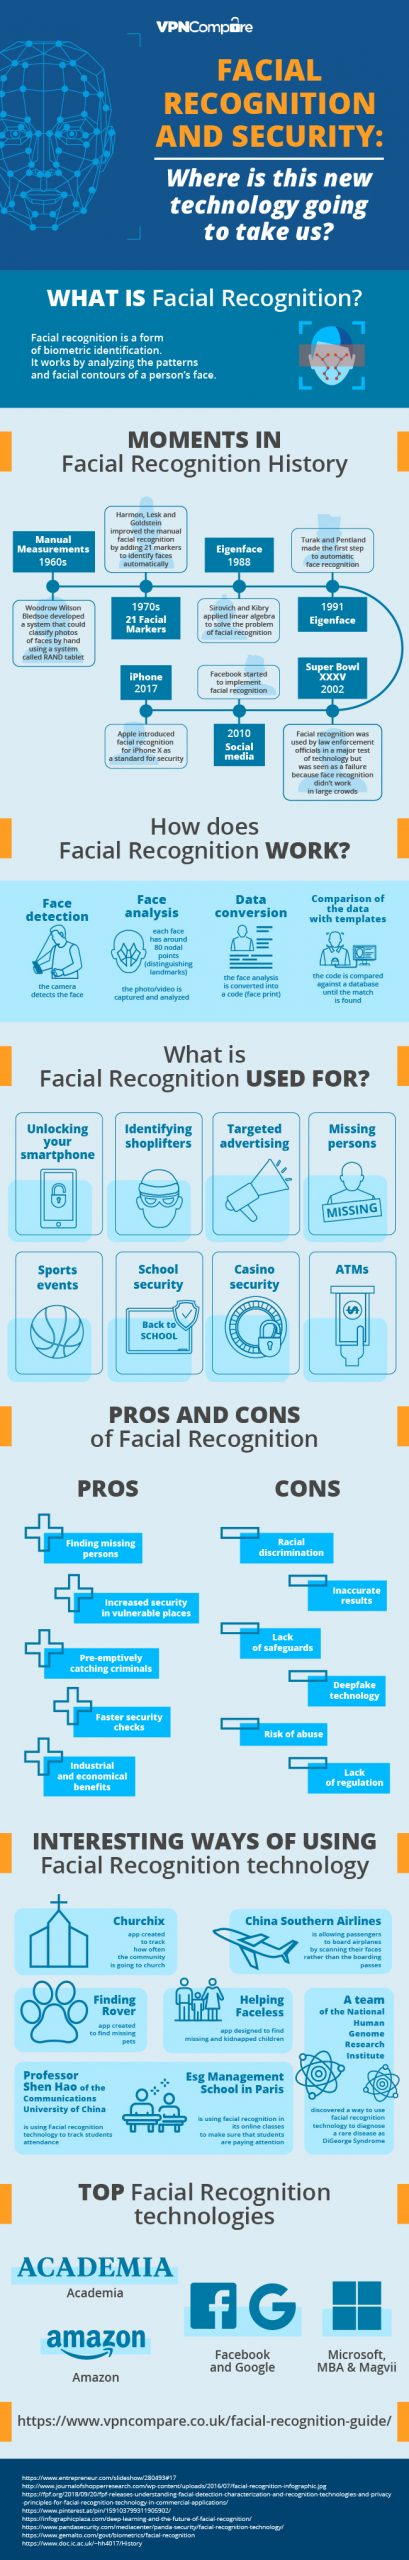 How is facial recognition technology used in payment transactions?